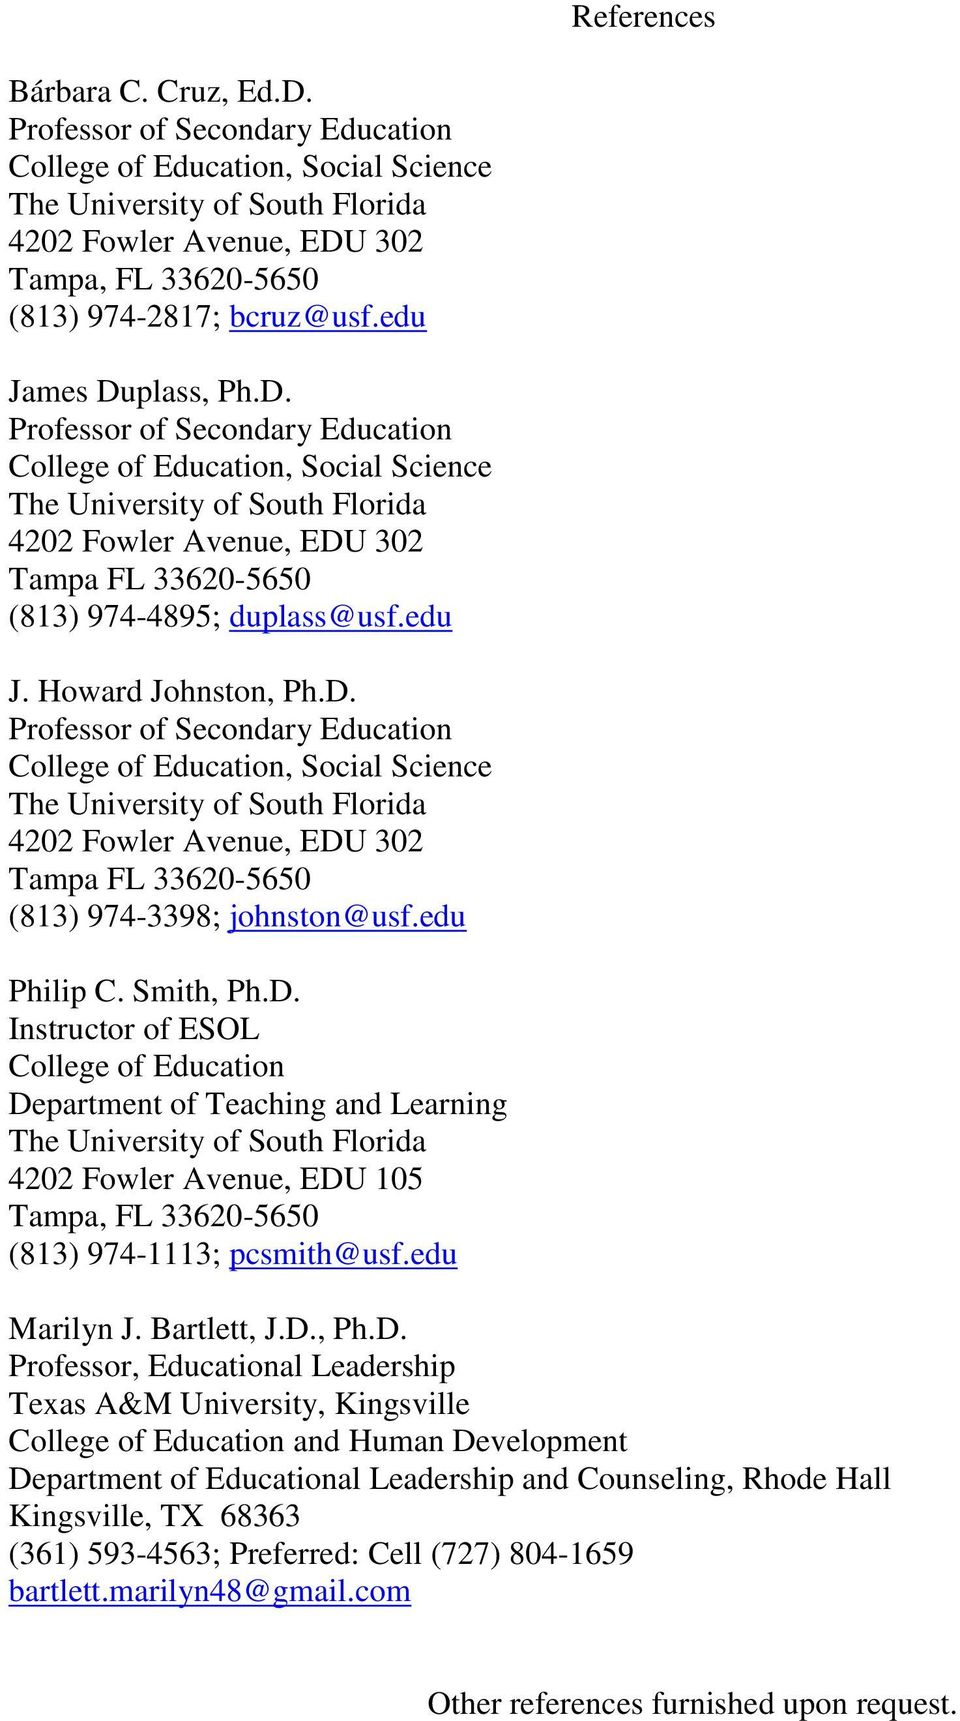 edu Philip C. Smith, Ph.D. Instructor of ESOL College of Education Department of Teaching and Learning 4202 Fowler Avenue, EDU 105 Tampa, FL 33620-5650 (813) 974-1113; pcsmith@usf.edu Marilyn J.